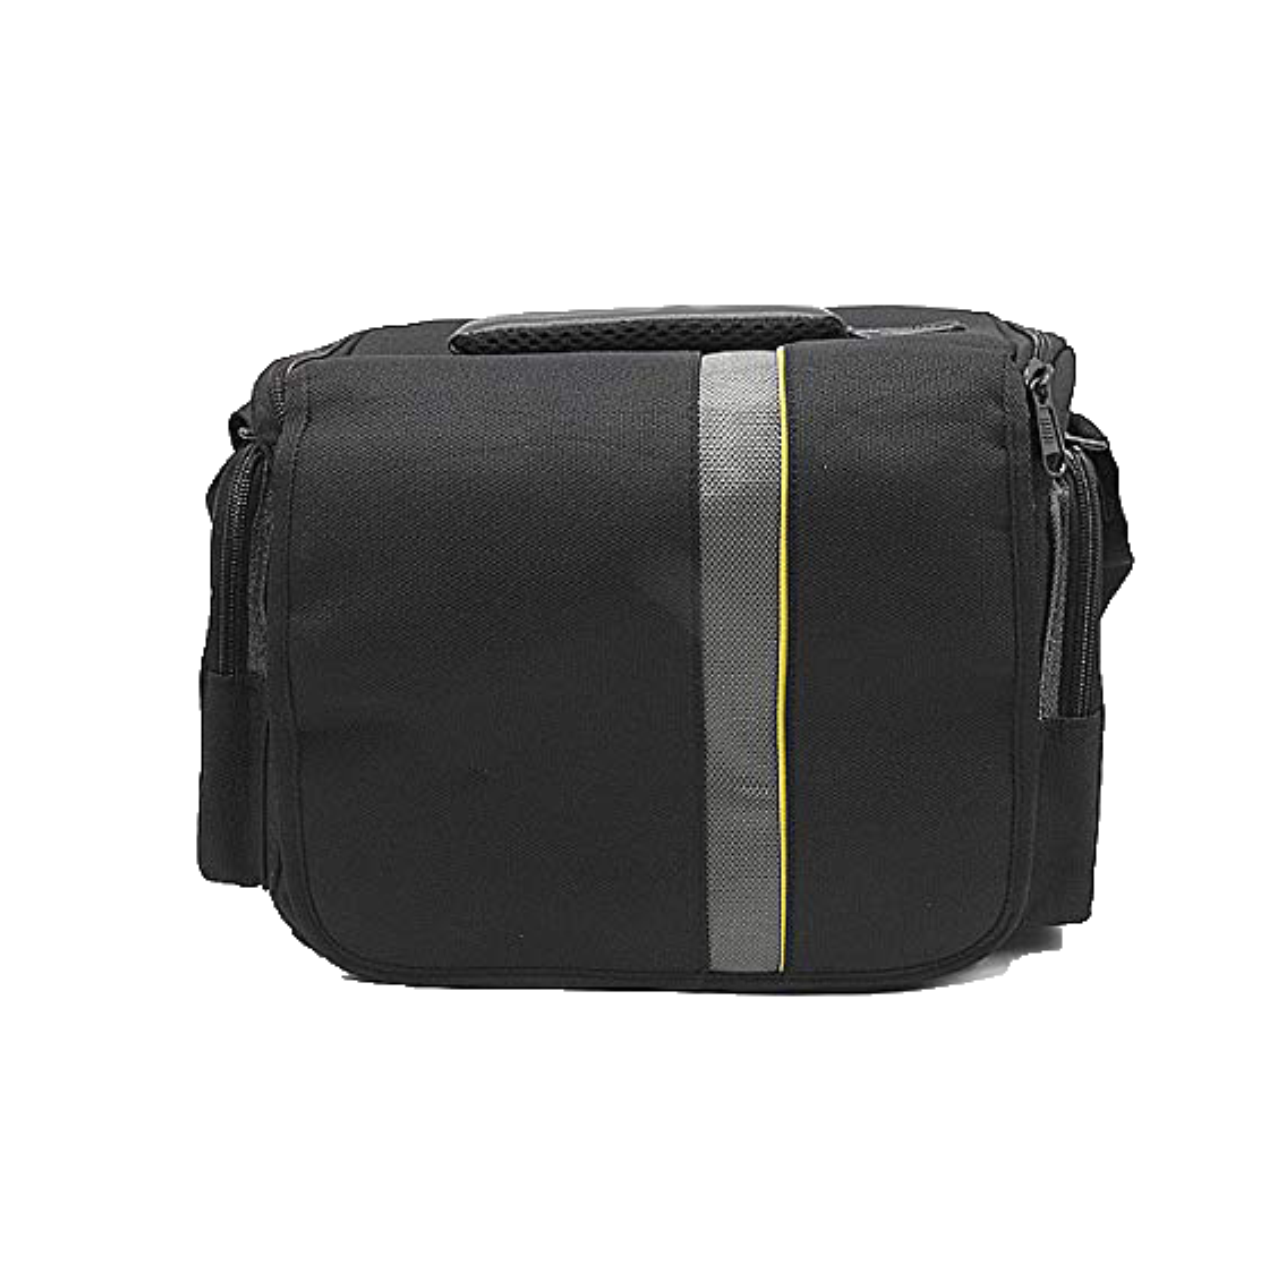 Waterproof Anti-Shock DSLR Camera Bag For Canon, Nikon, Samsung, And Sony Camera Bag -9004 Camera Bags Camera Bags